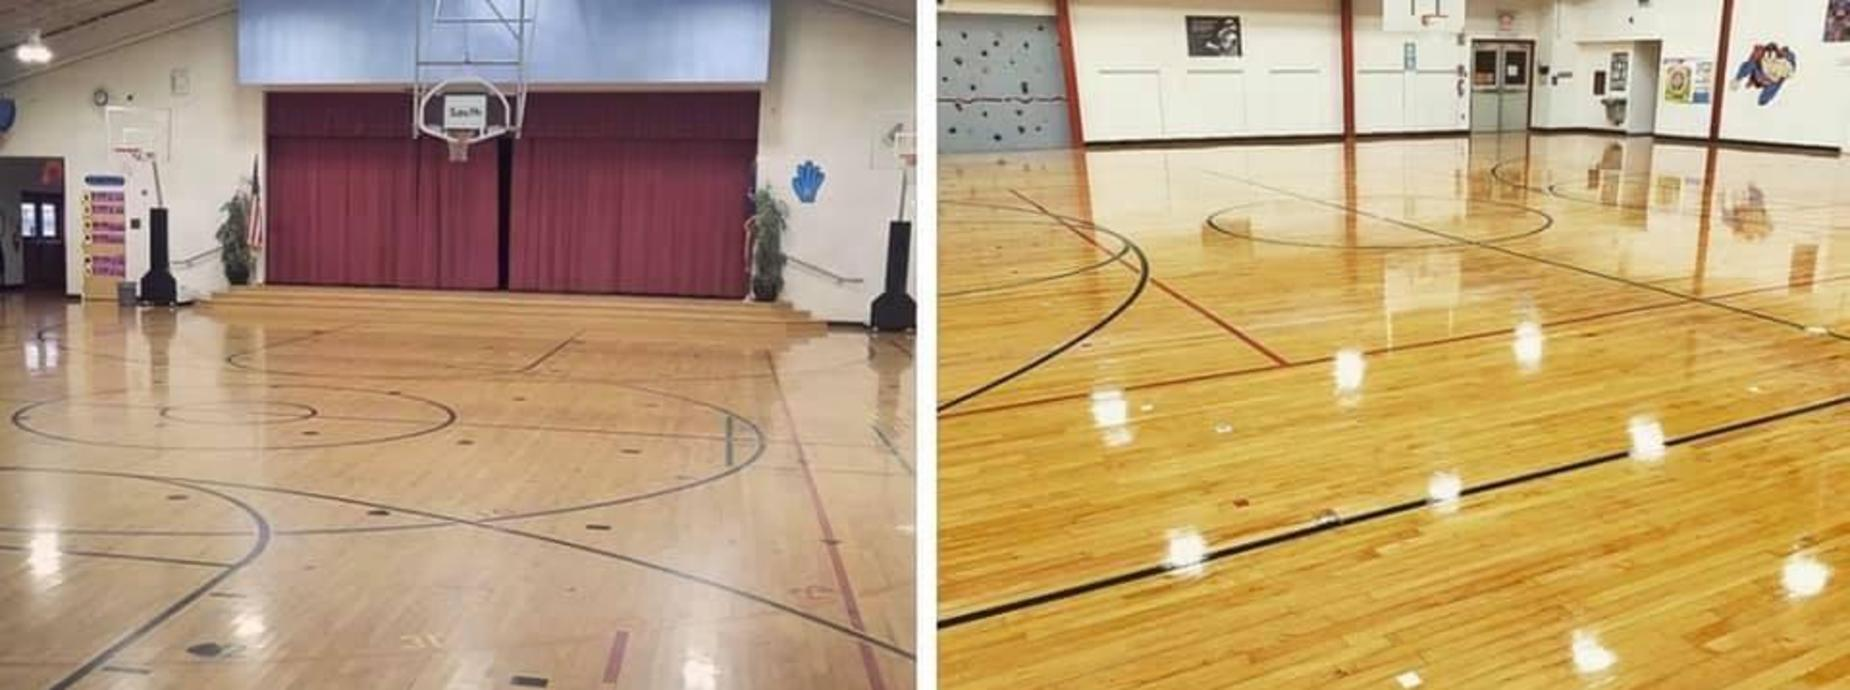 Gym Floor - Before and After!